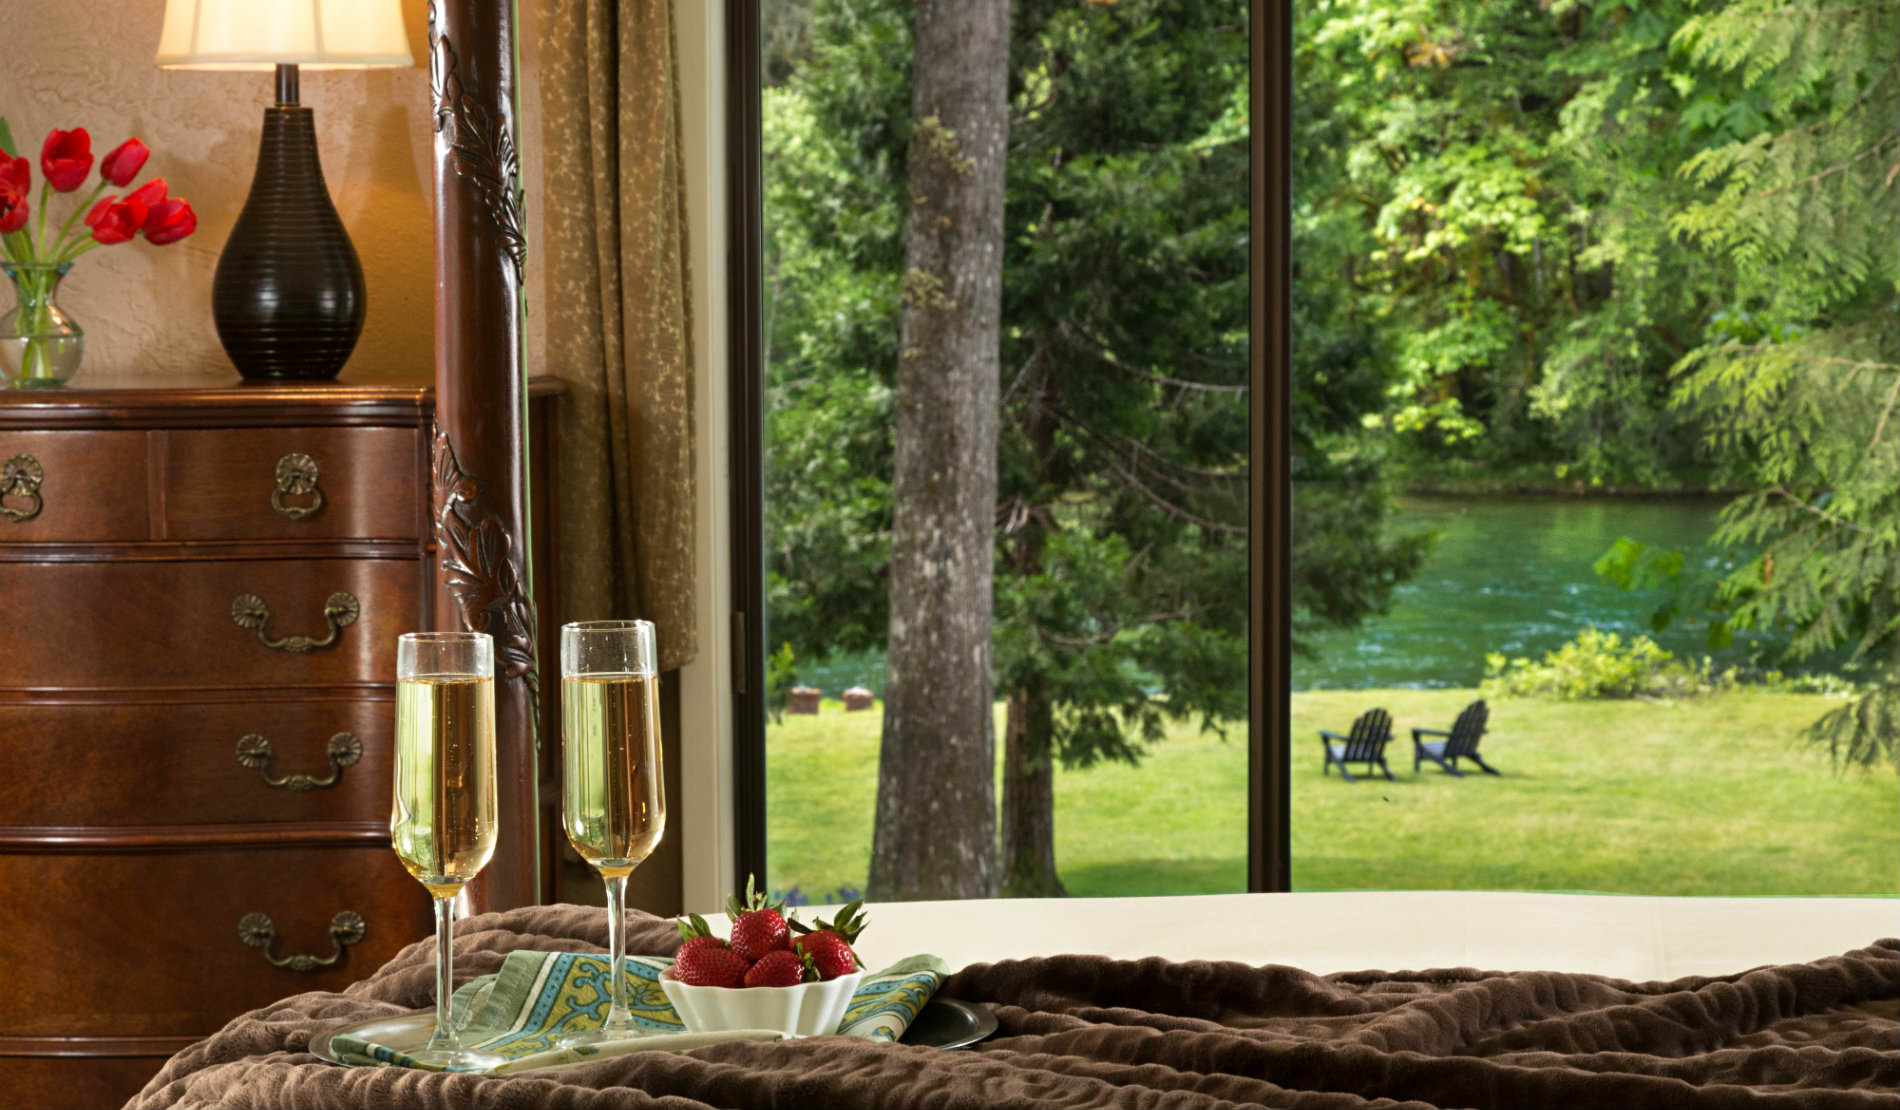 View from bed with wine glasses and strawberries to brown dresser and grassy area and river, two chairs